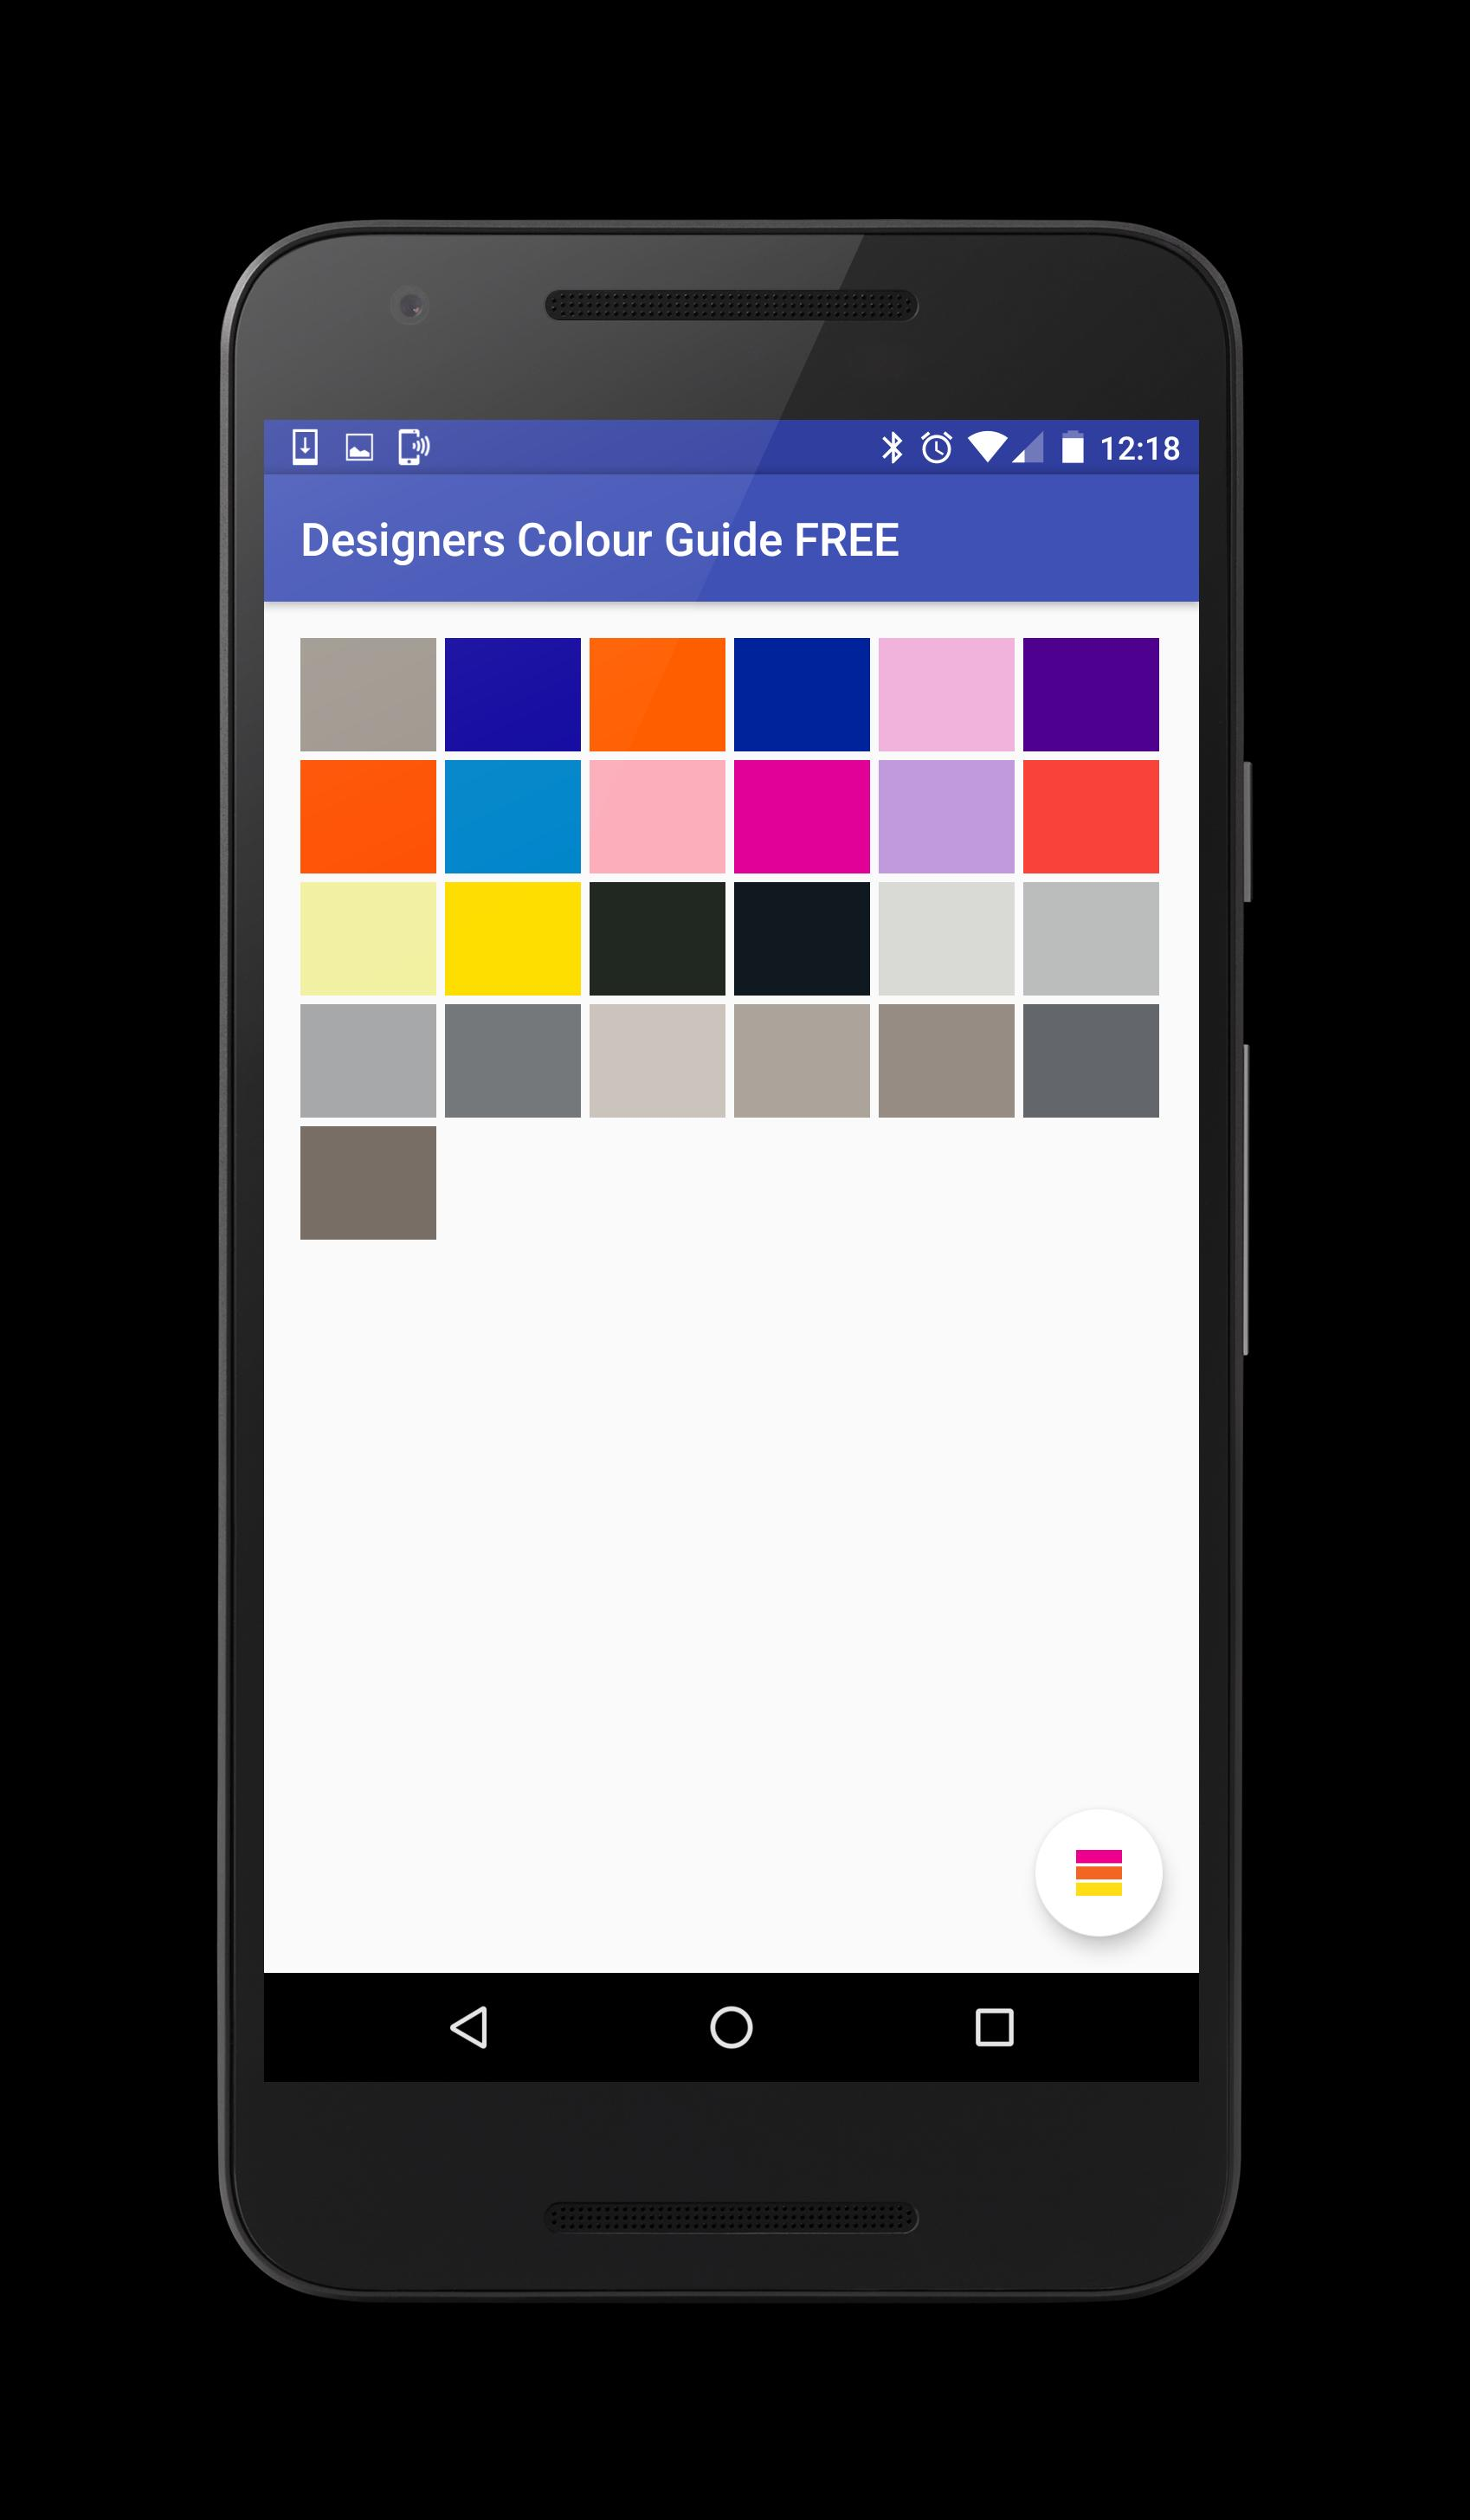 Designers Colour Guide FREE poster